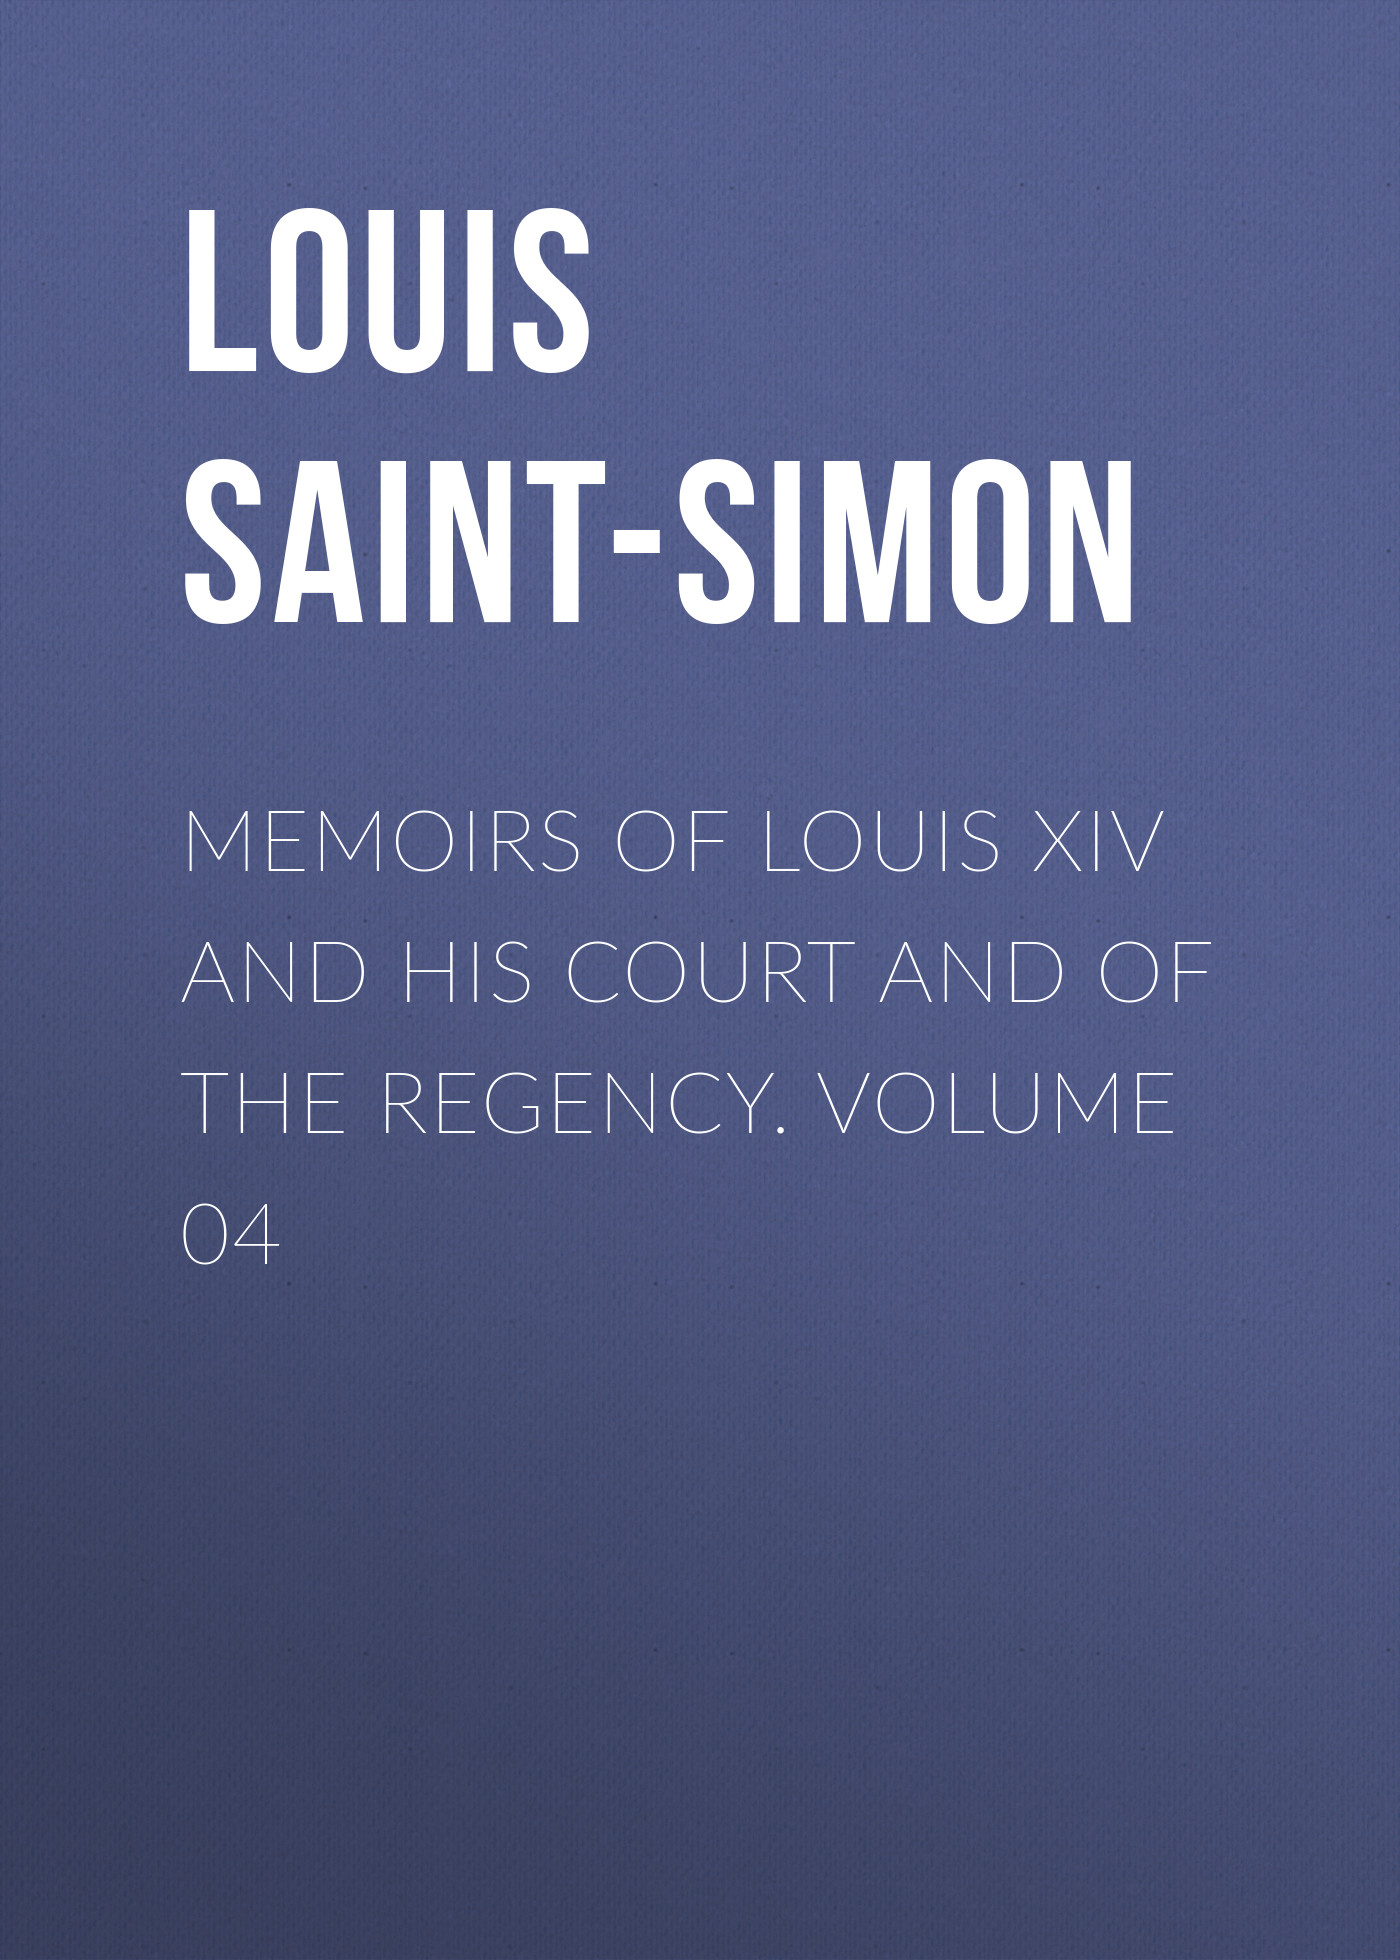 Louis Saint-Simon Memoirs of Louis XIV and His Court and of the Regency. Volume 04